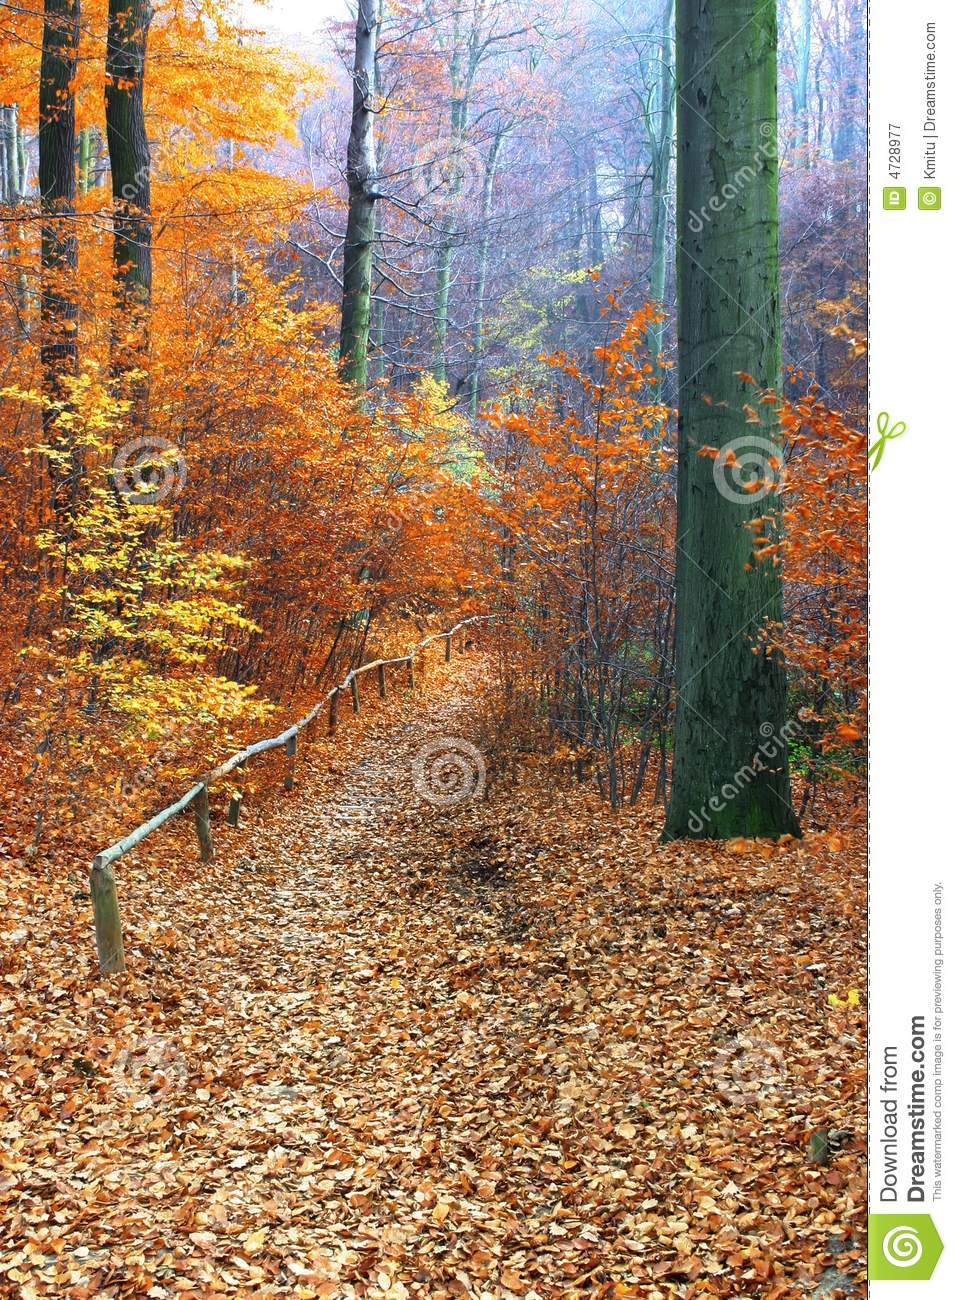 Path in beautiful fall forest focus set in foreground on a large tree